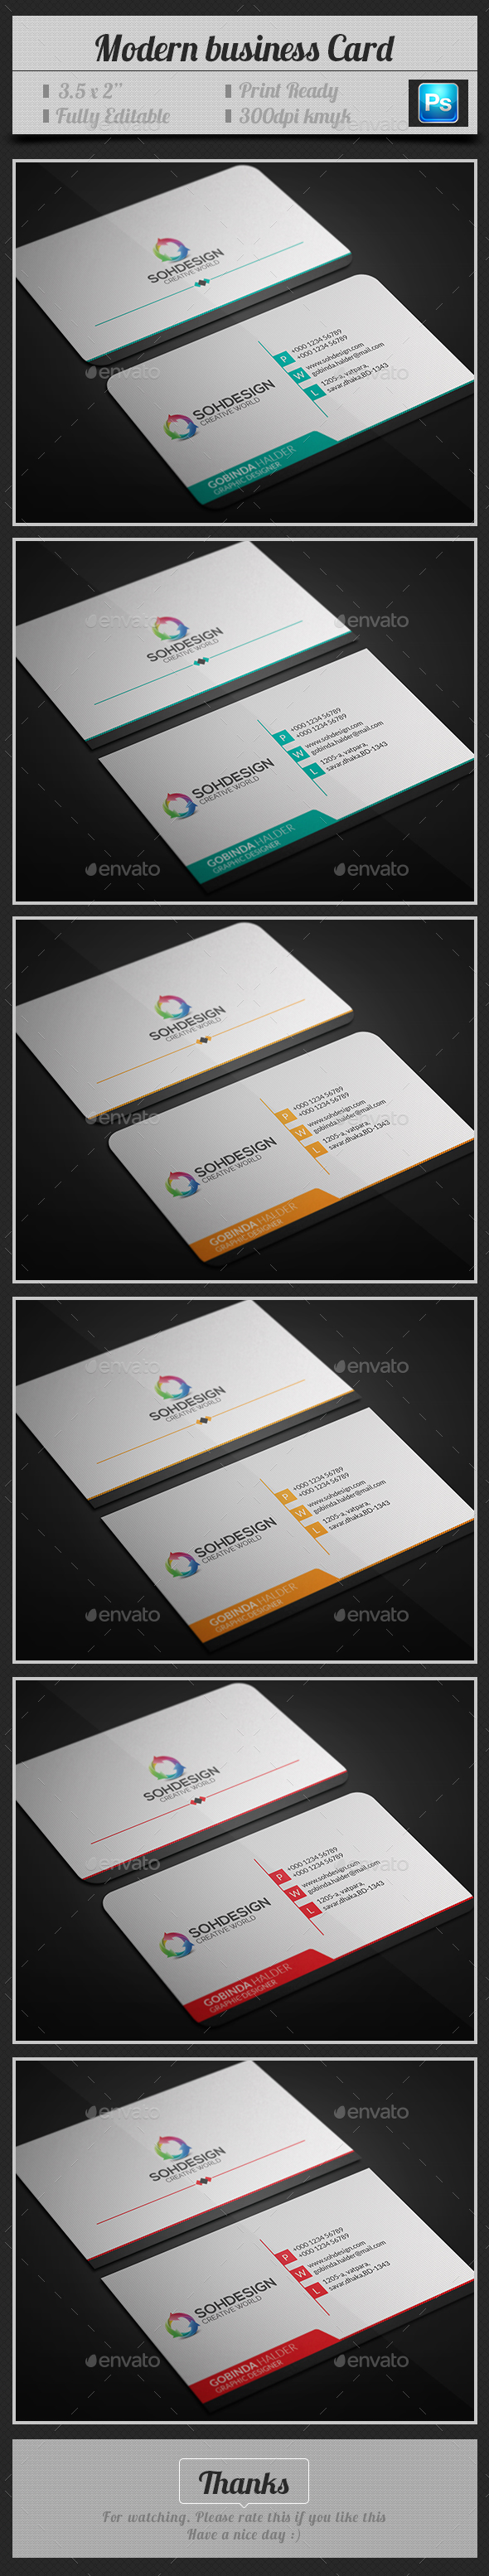 Modern Business Card V.3 - Business Cards Print Templates